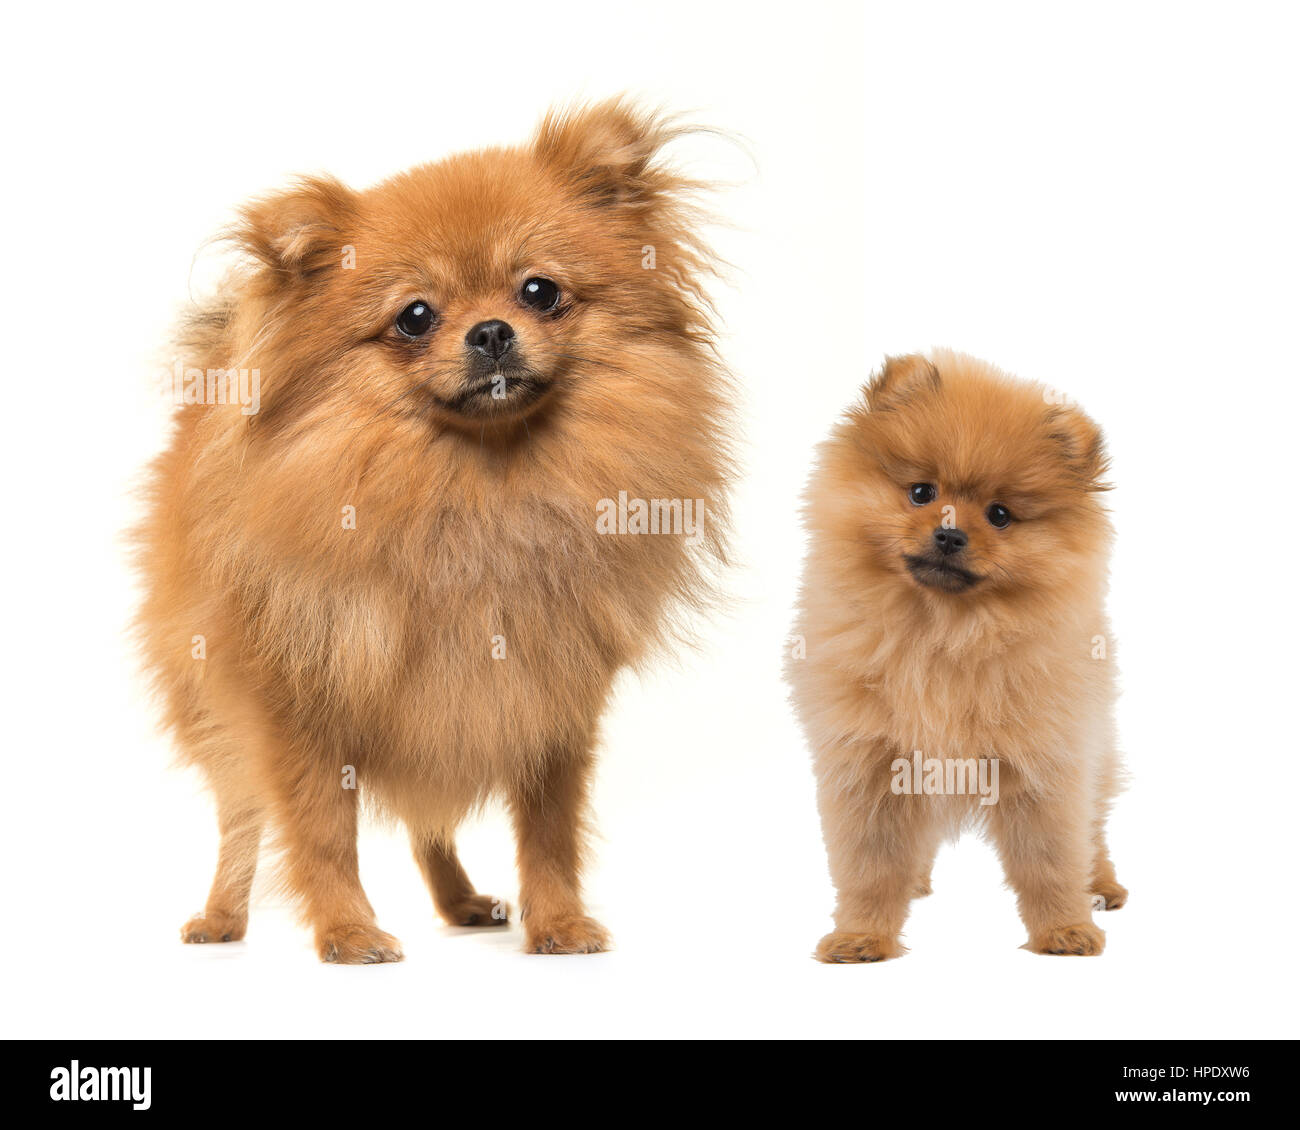 Adult And Puppy Pomeranian Dogs Standing Facing The Camera On A